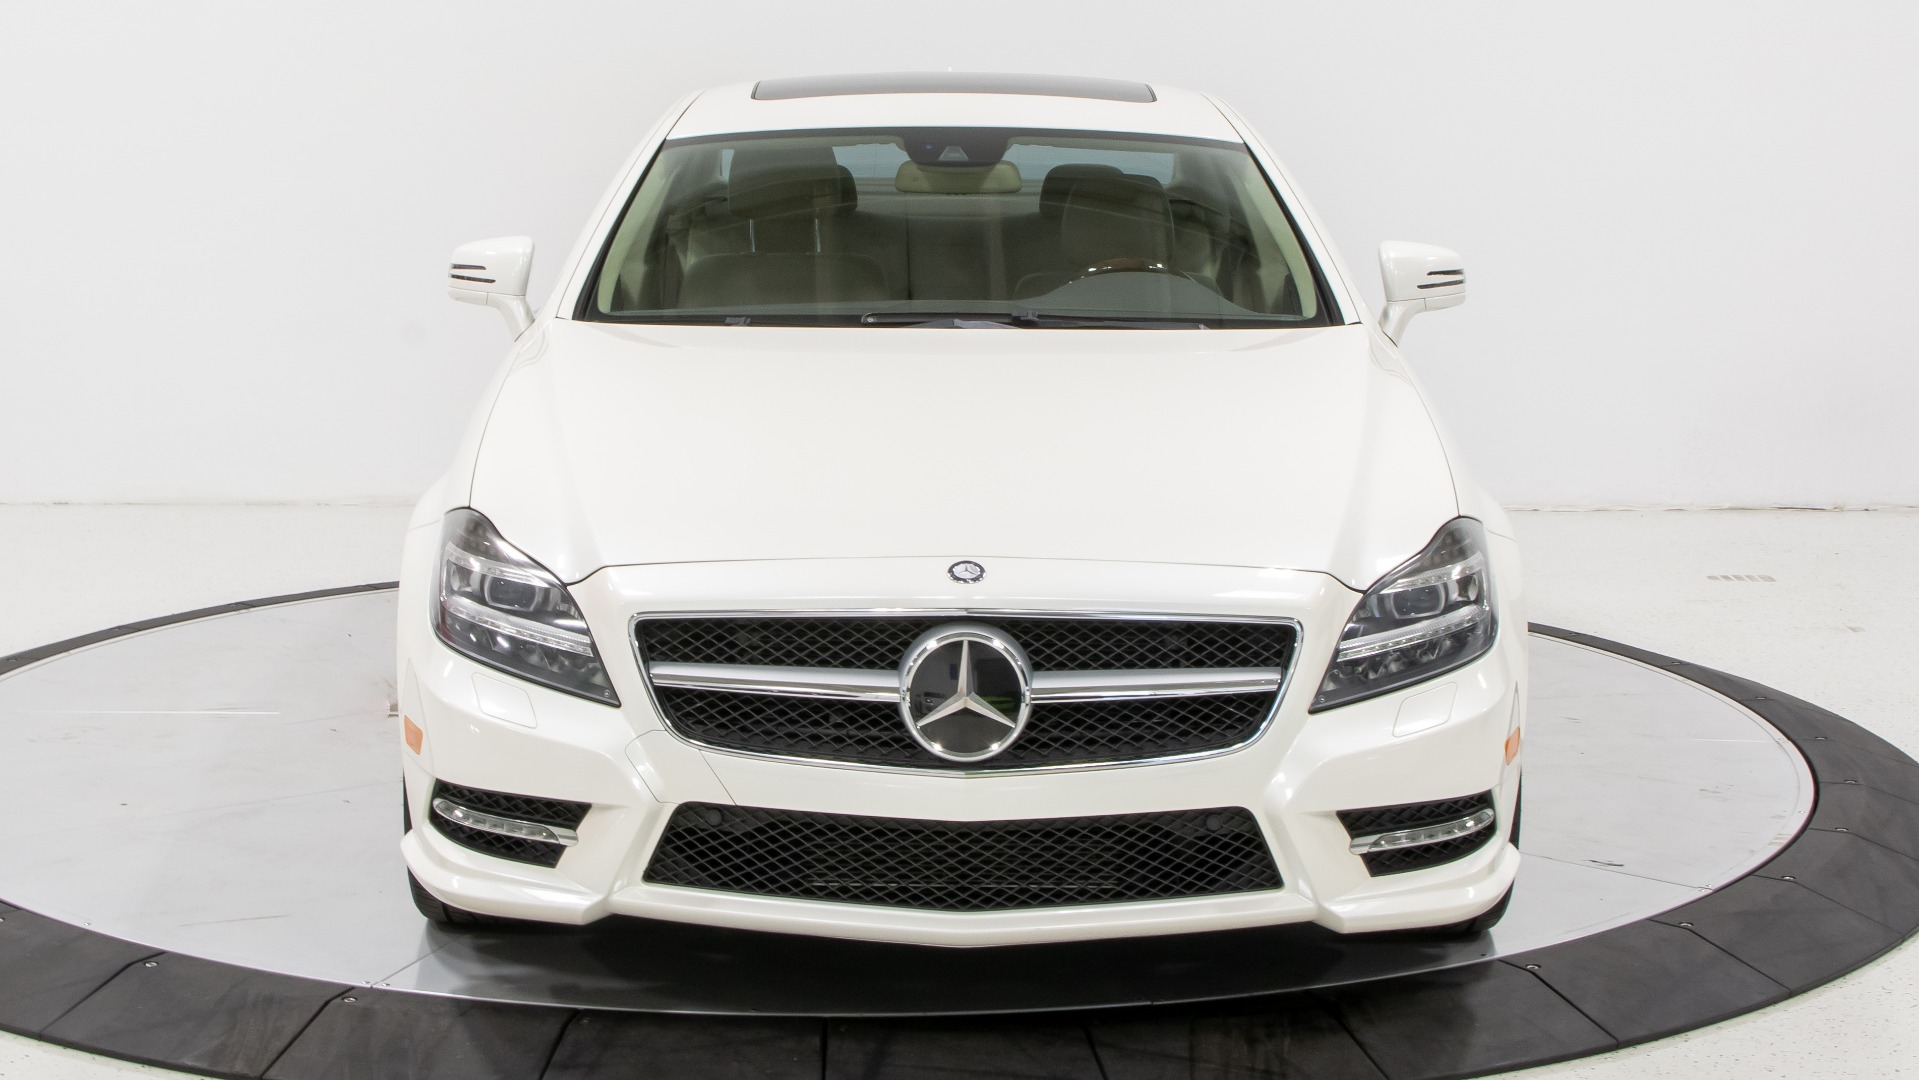 2012 Mercedes Benz CLS CLS 550 Stock for sale near Pompano